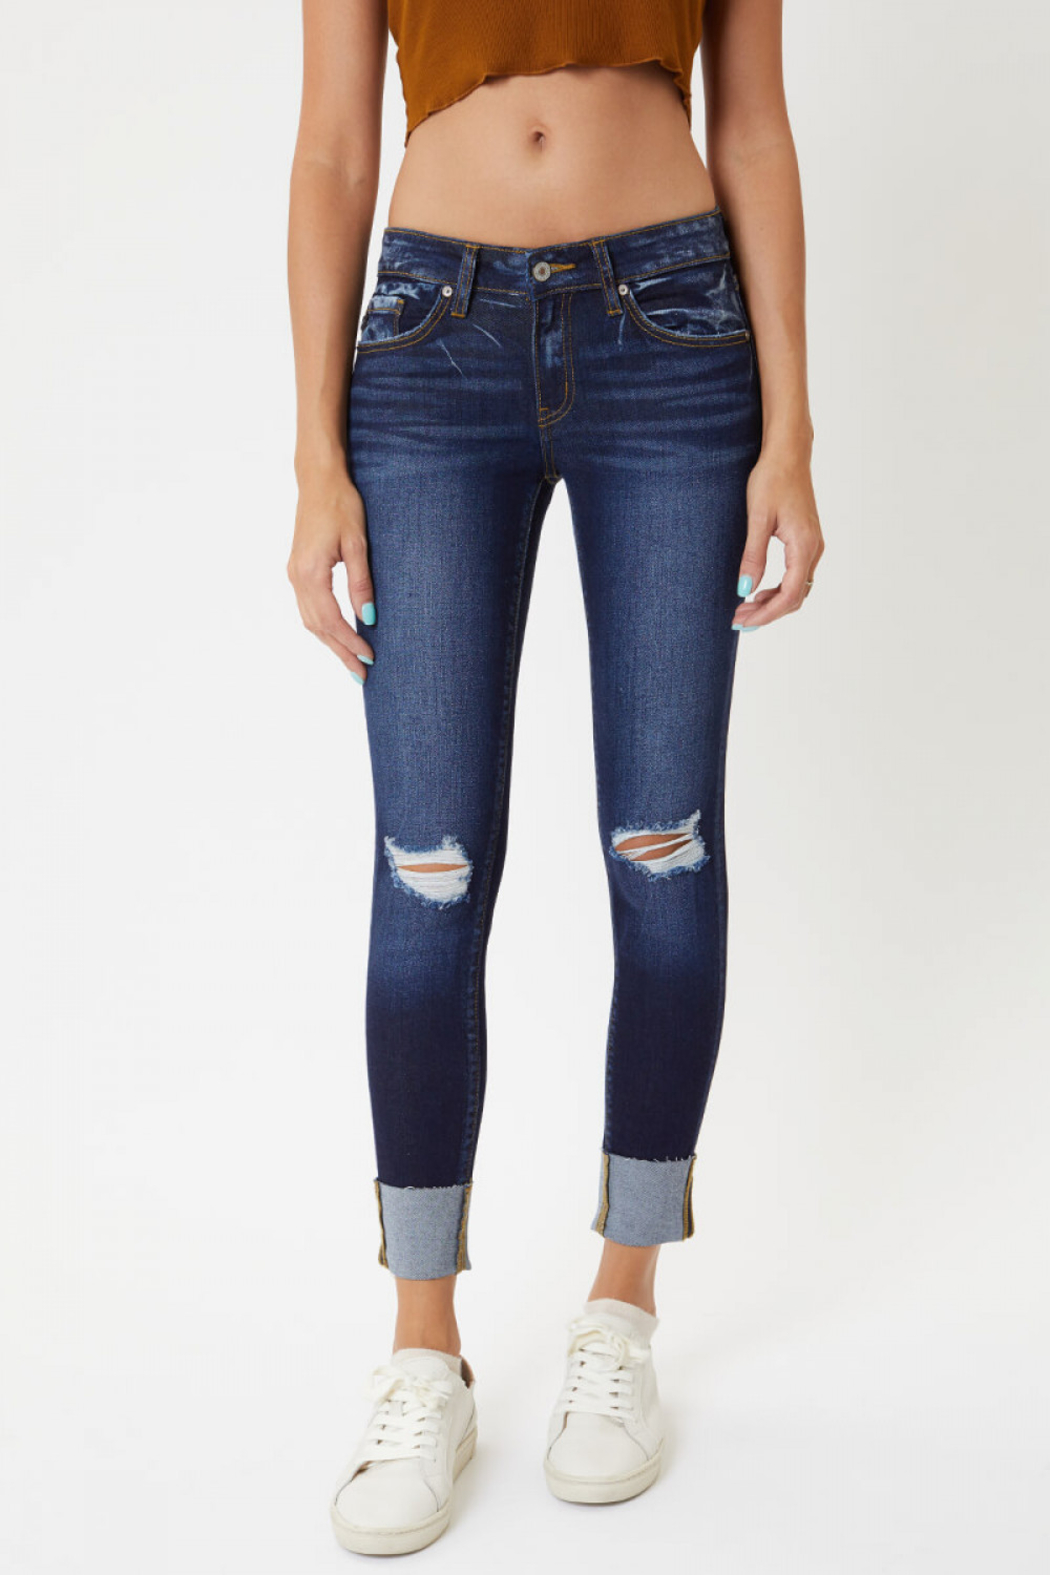 KanCan Low Rise Cuffed Ankle Skinny (KC8245RD) - Main Image